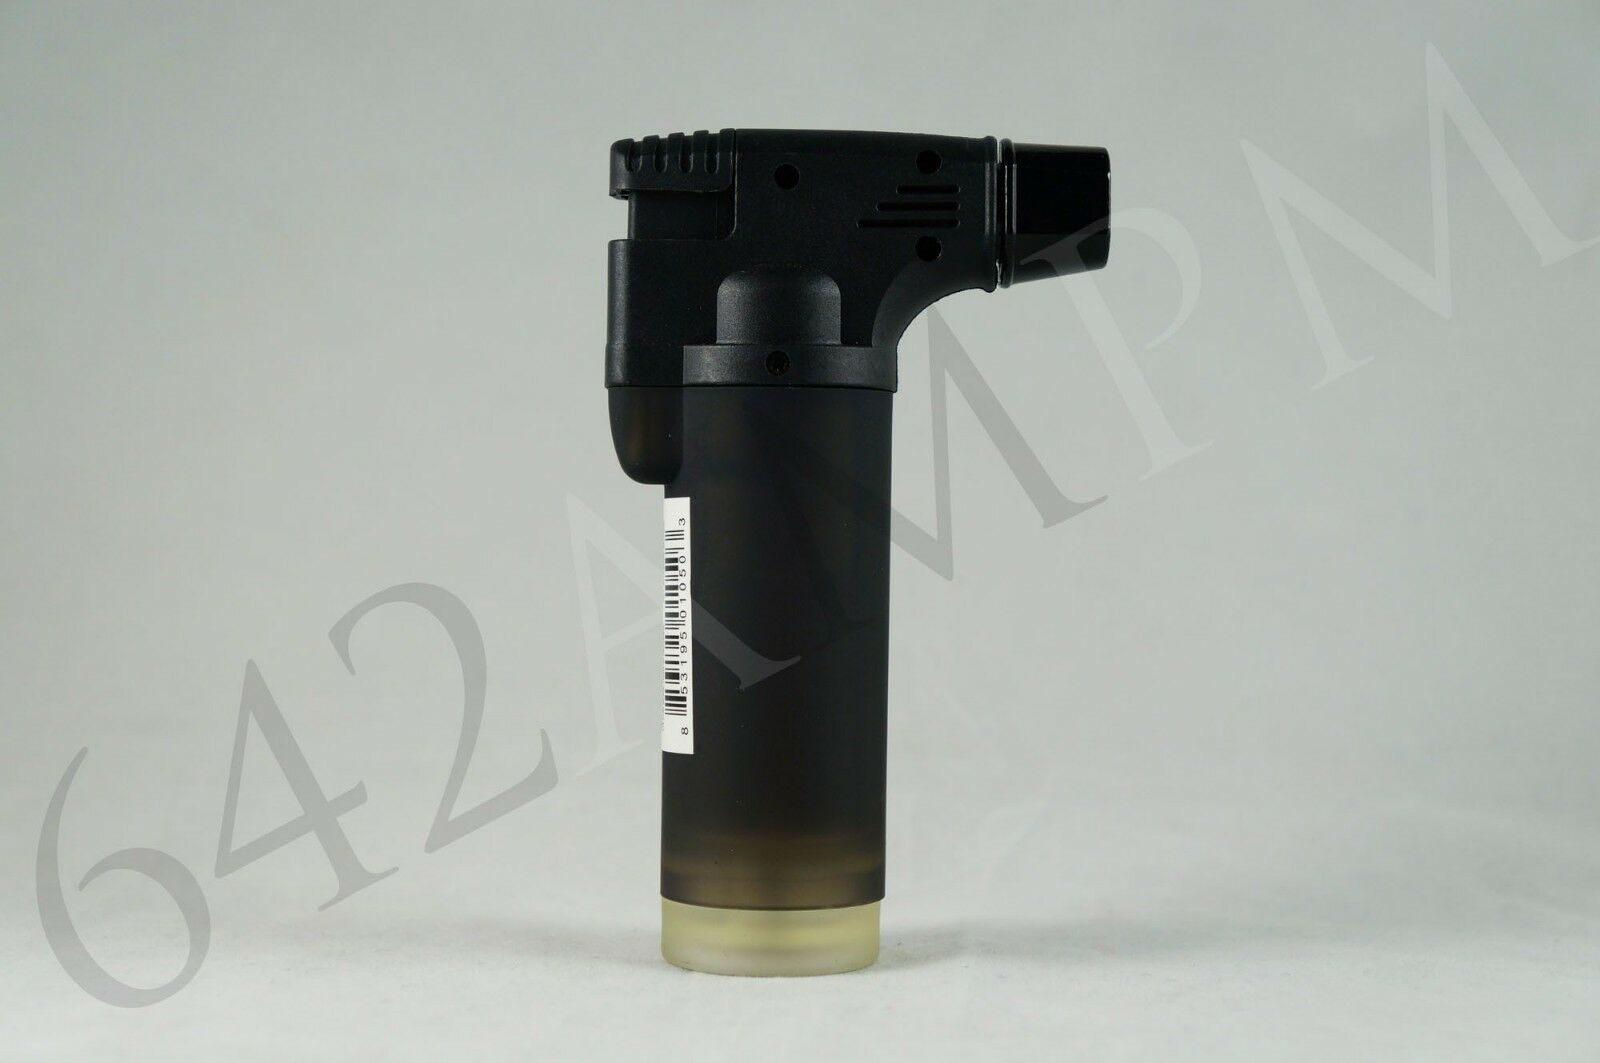 Купить (Original) Eagle Jet Torch Gun Adjustable Windproof  Flame Refillable Lighter